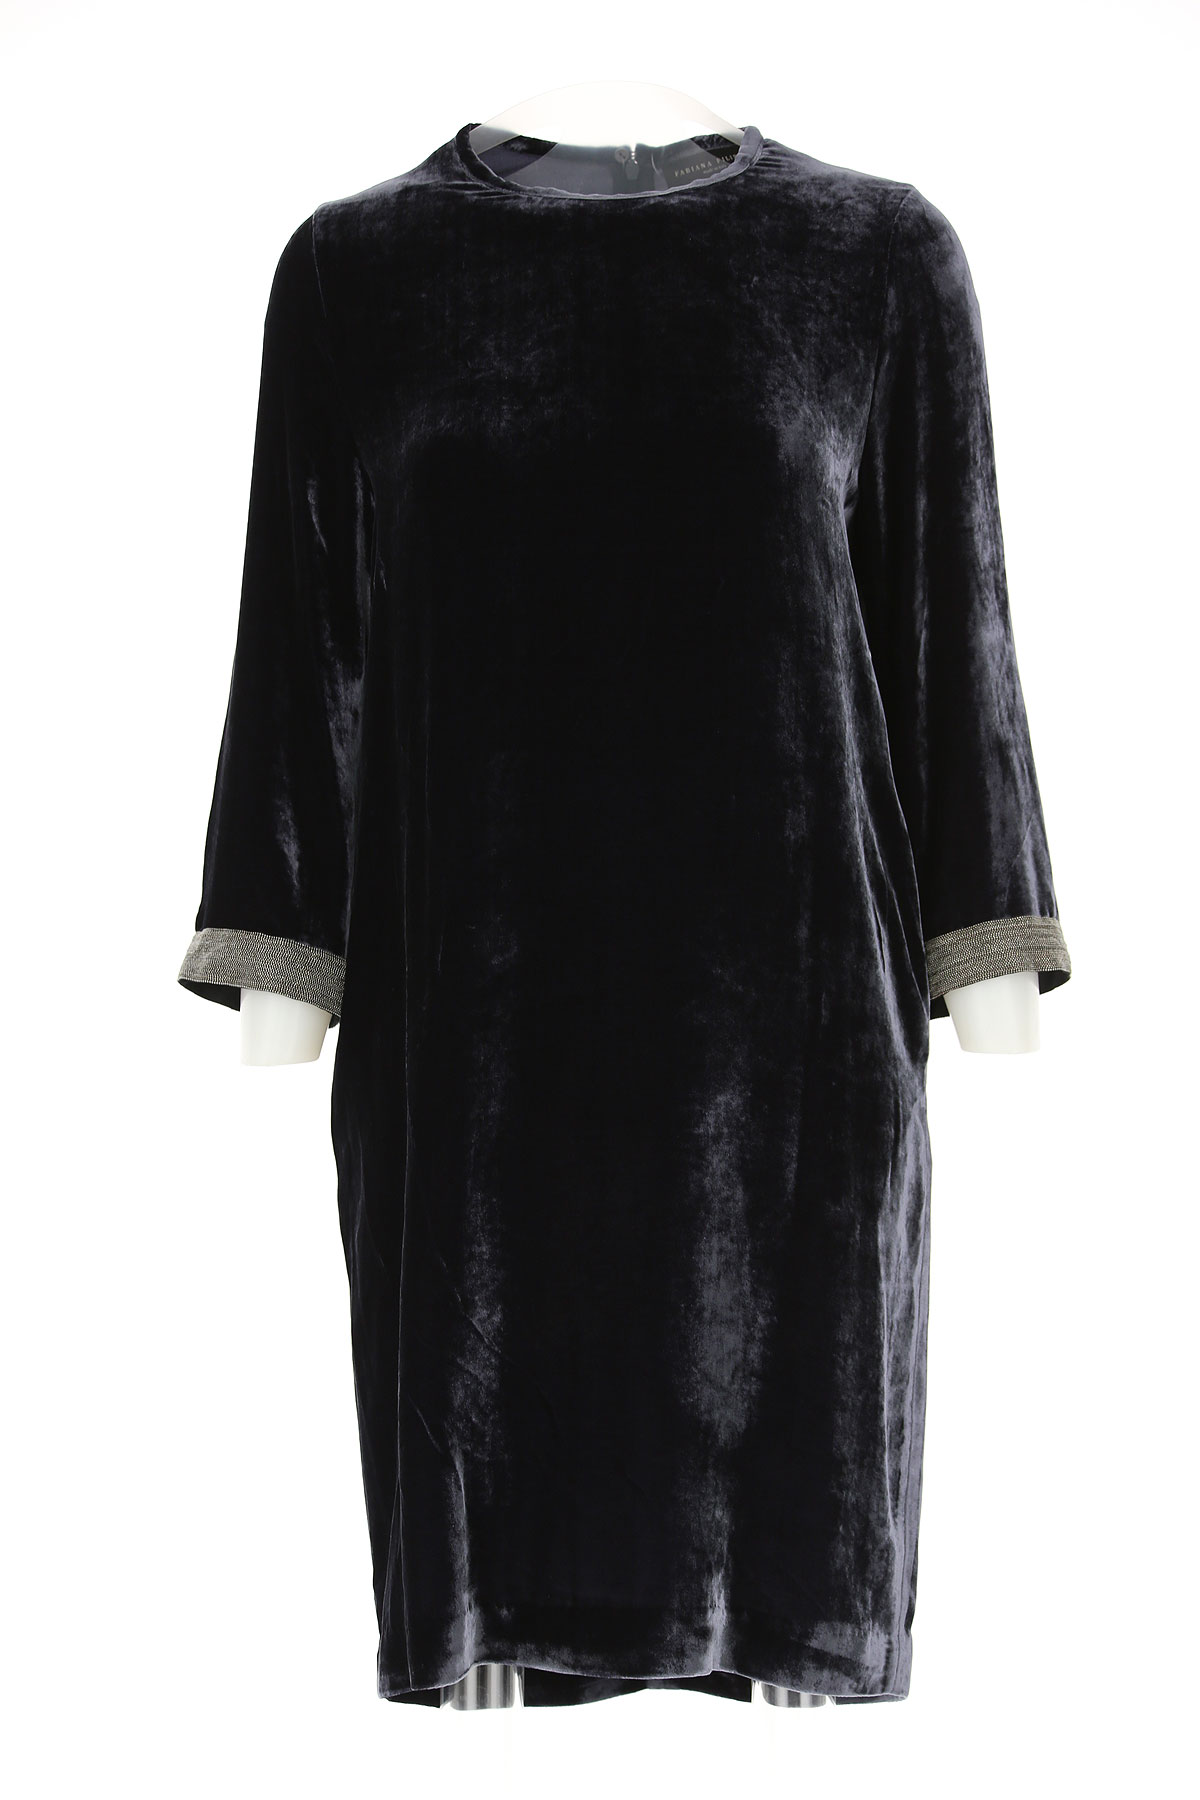 Image of Fabiana Filippi Dress for Women, Evening Cocktail Party, navy, Viscose, 2017, 4 6